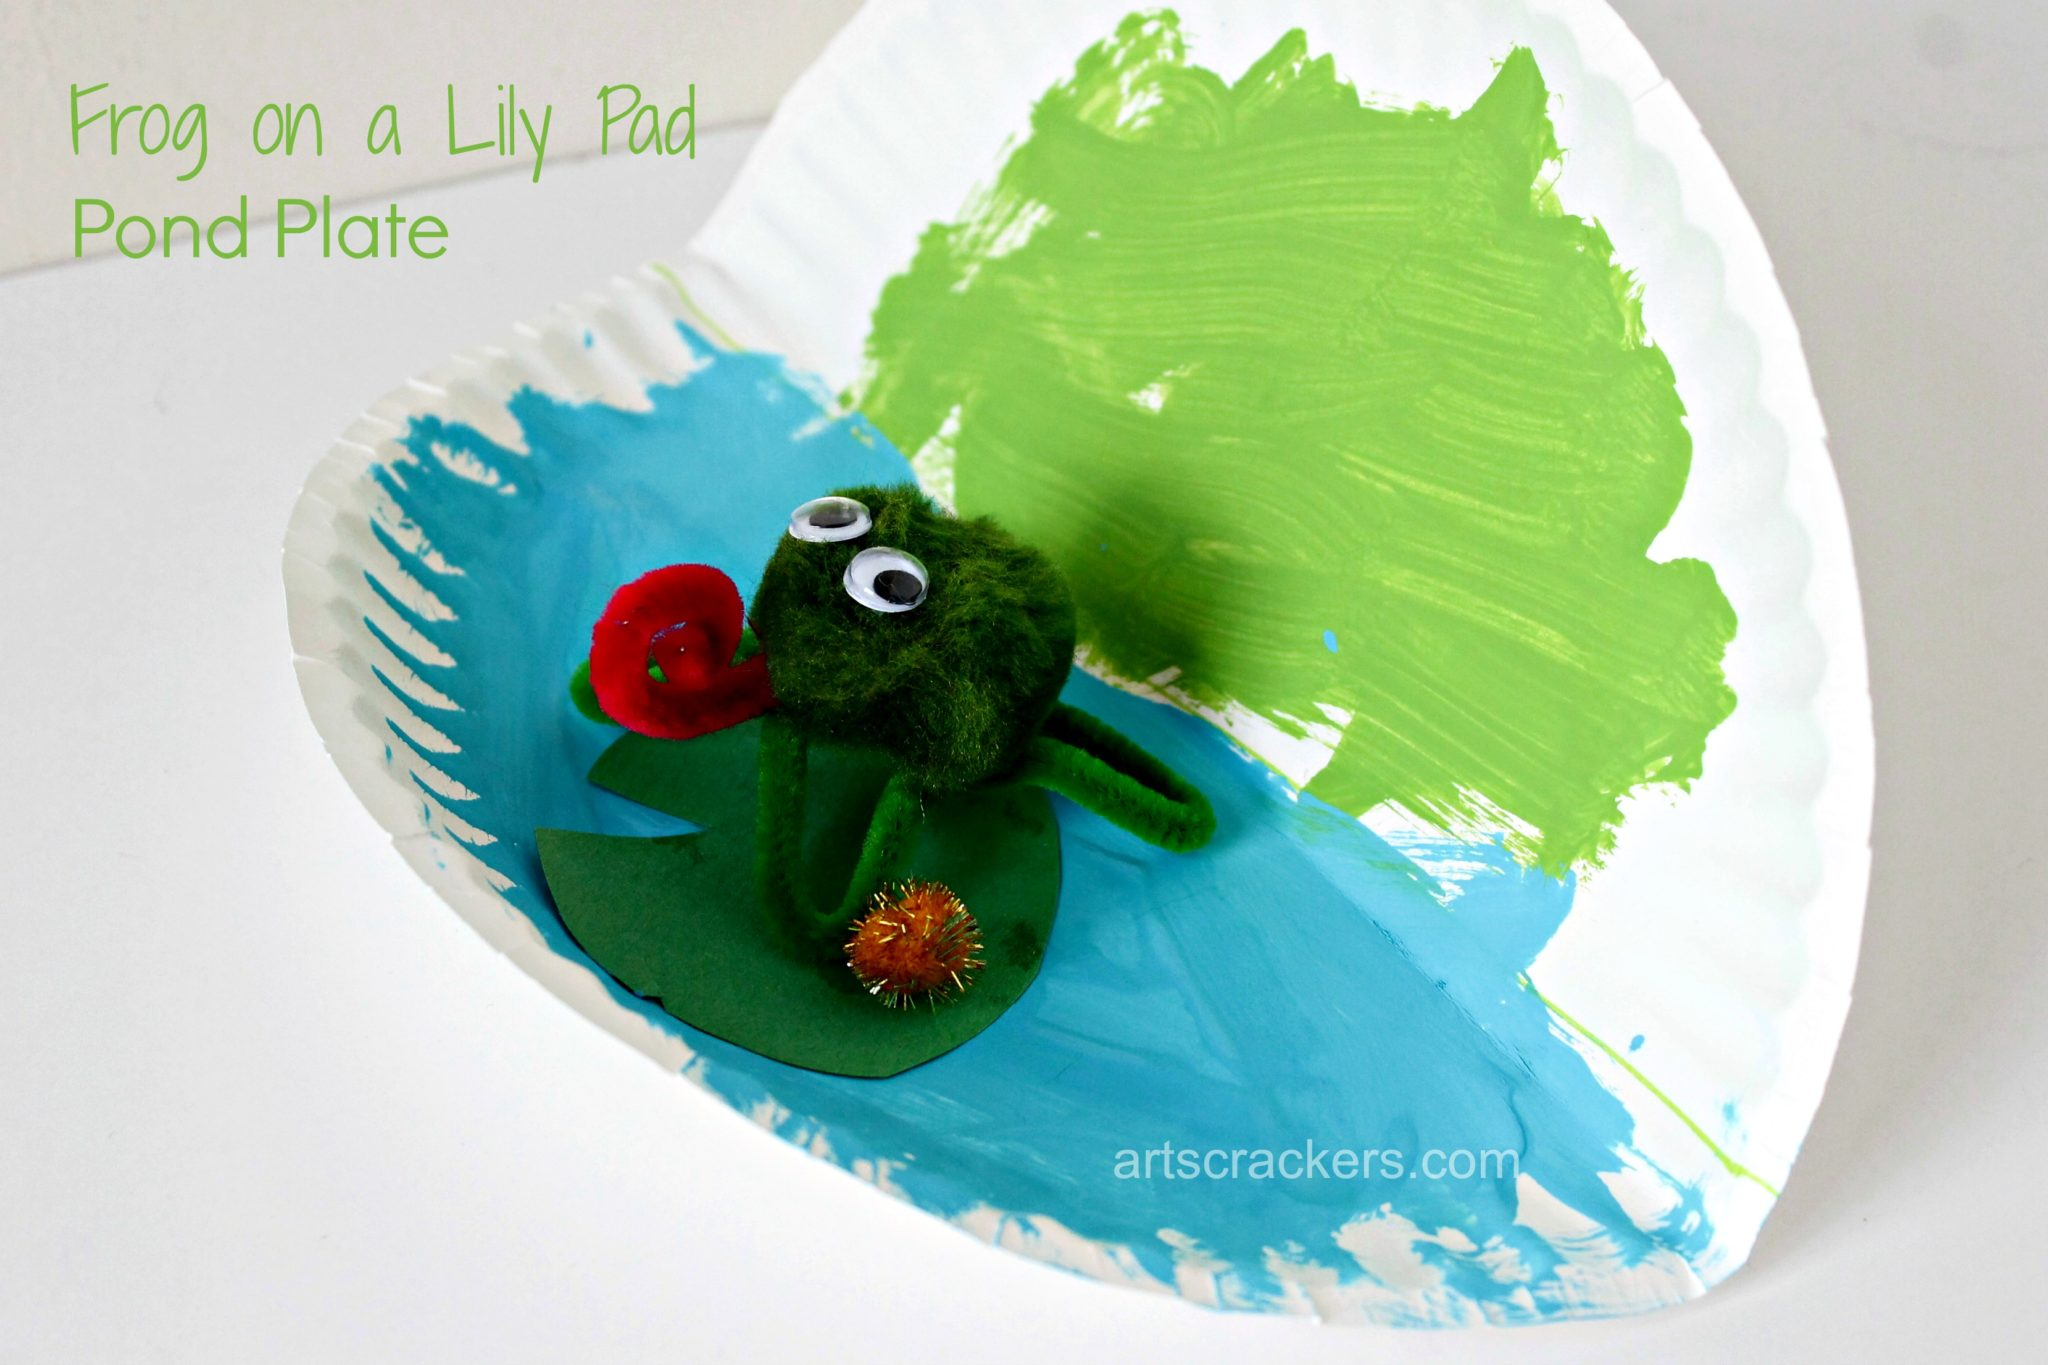 Frog on a Lily Pad Pond Plate Step Kid Made.